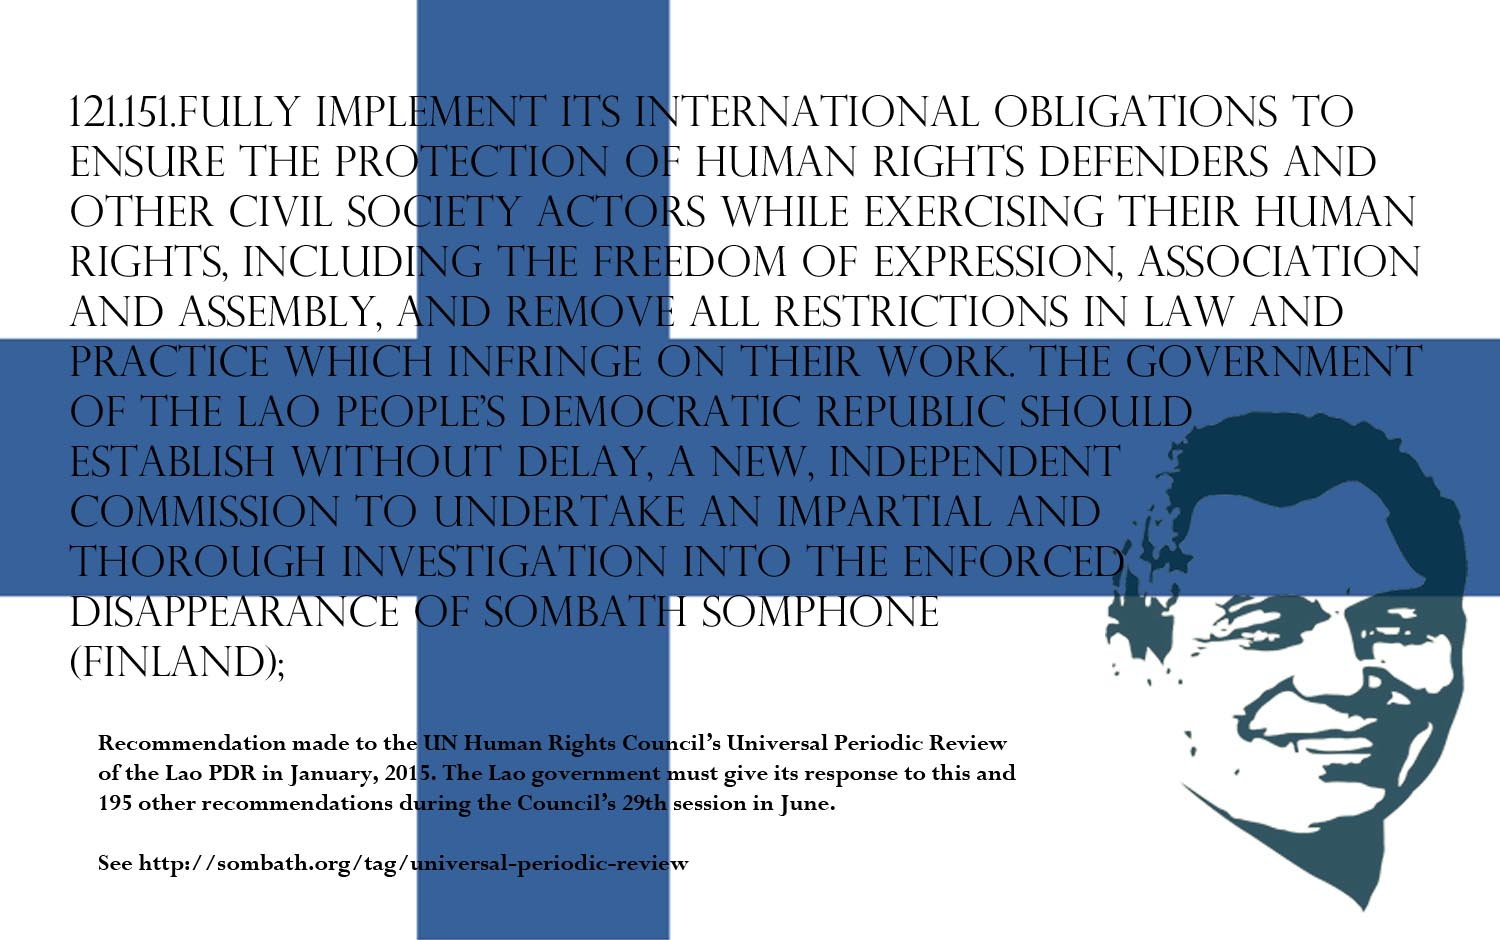 UPR Recommendation-Finland